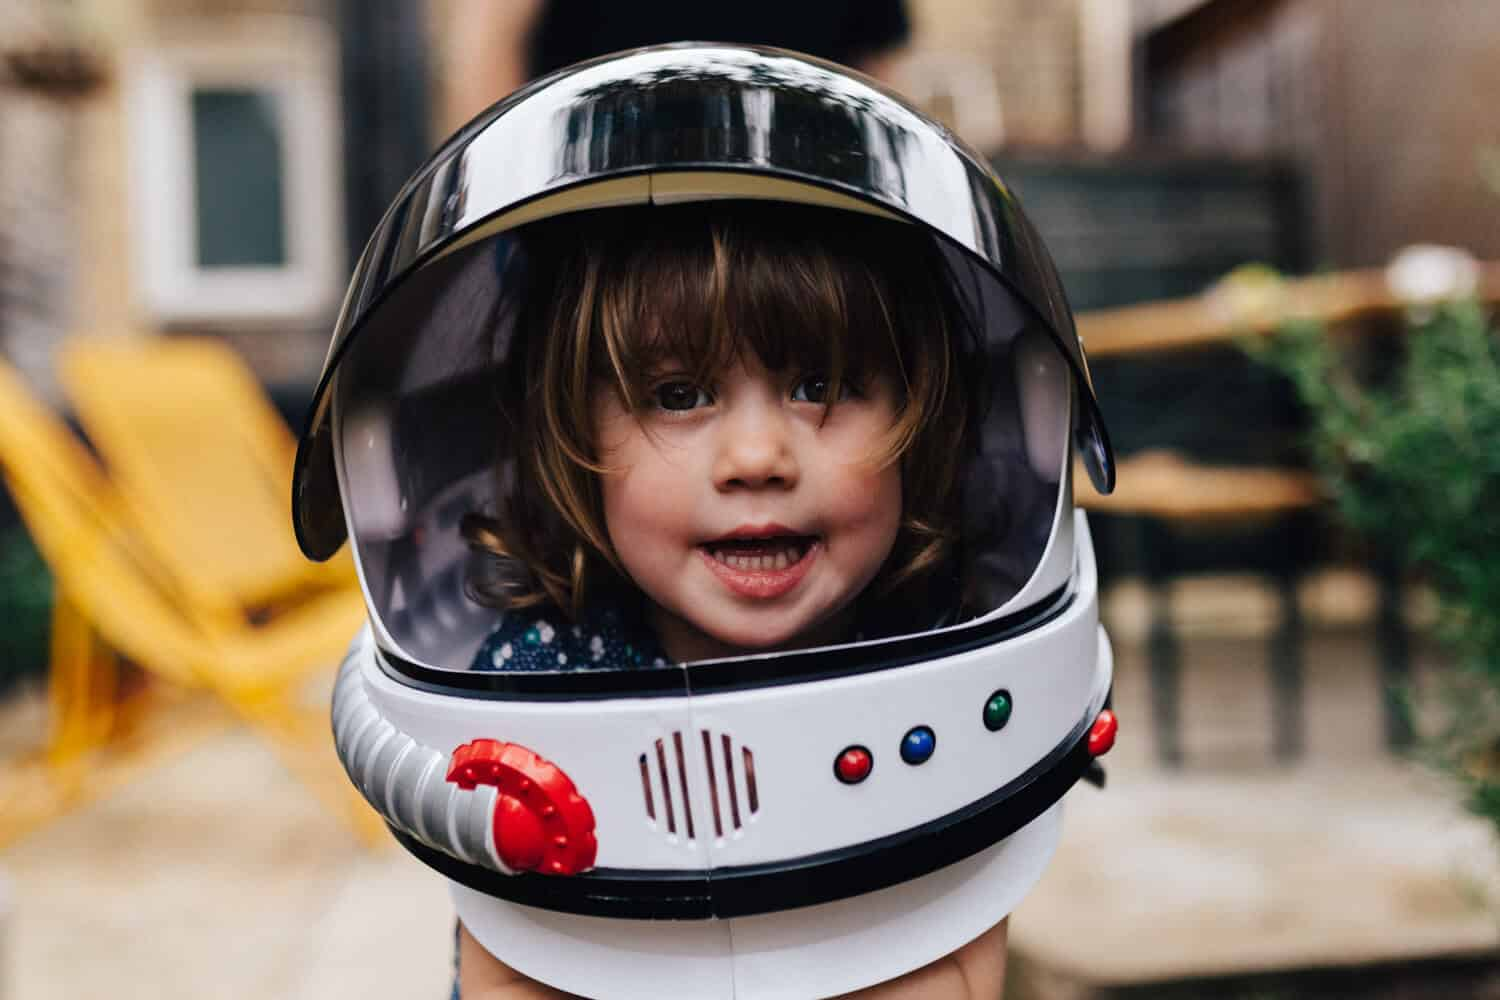 Toddler girl smiling wearing space helmet